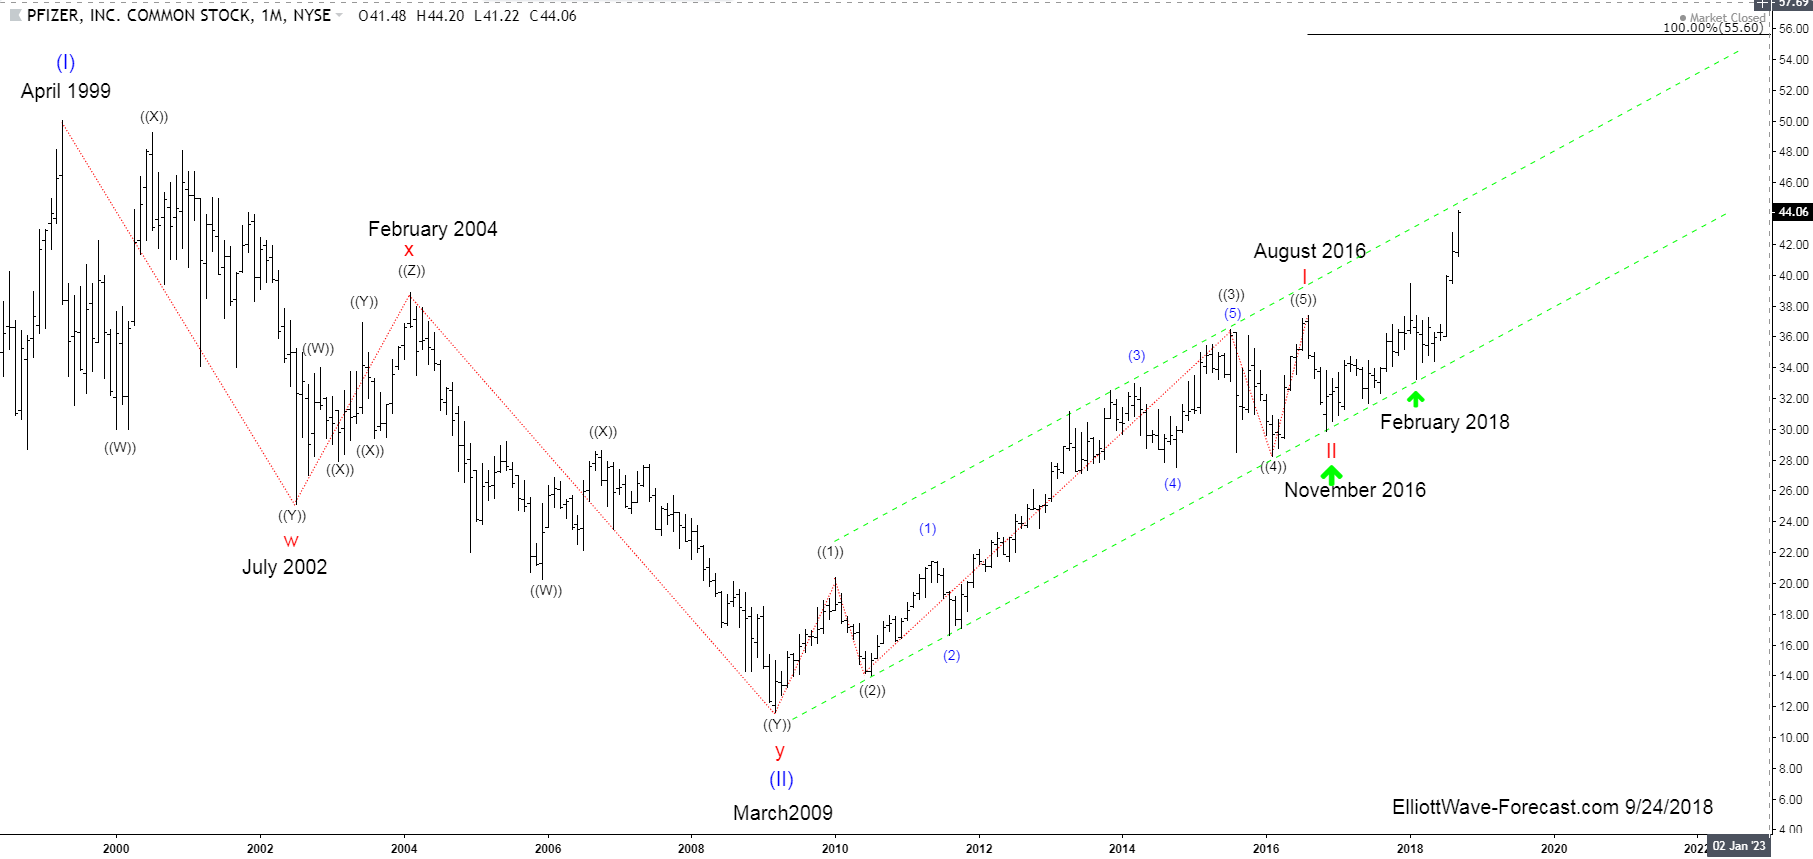 PFIZER Long Term Bullish Trend and Elliott Wave Cycles